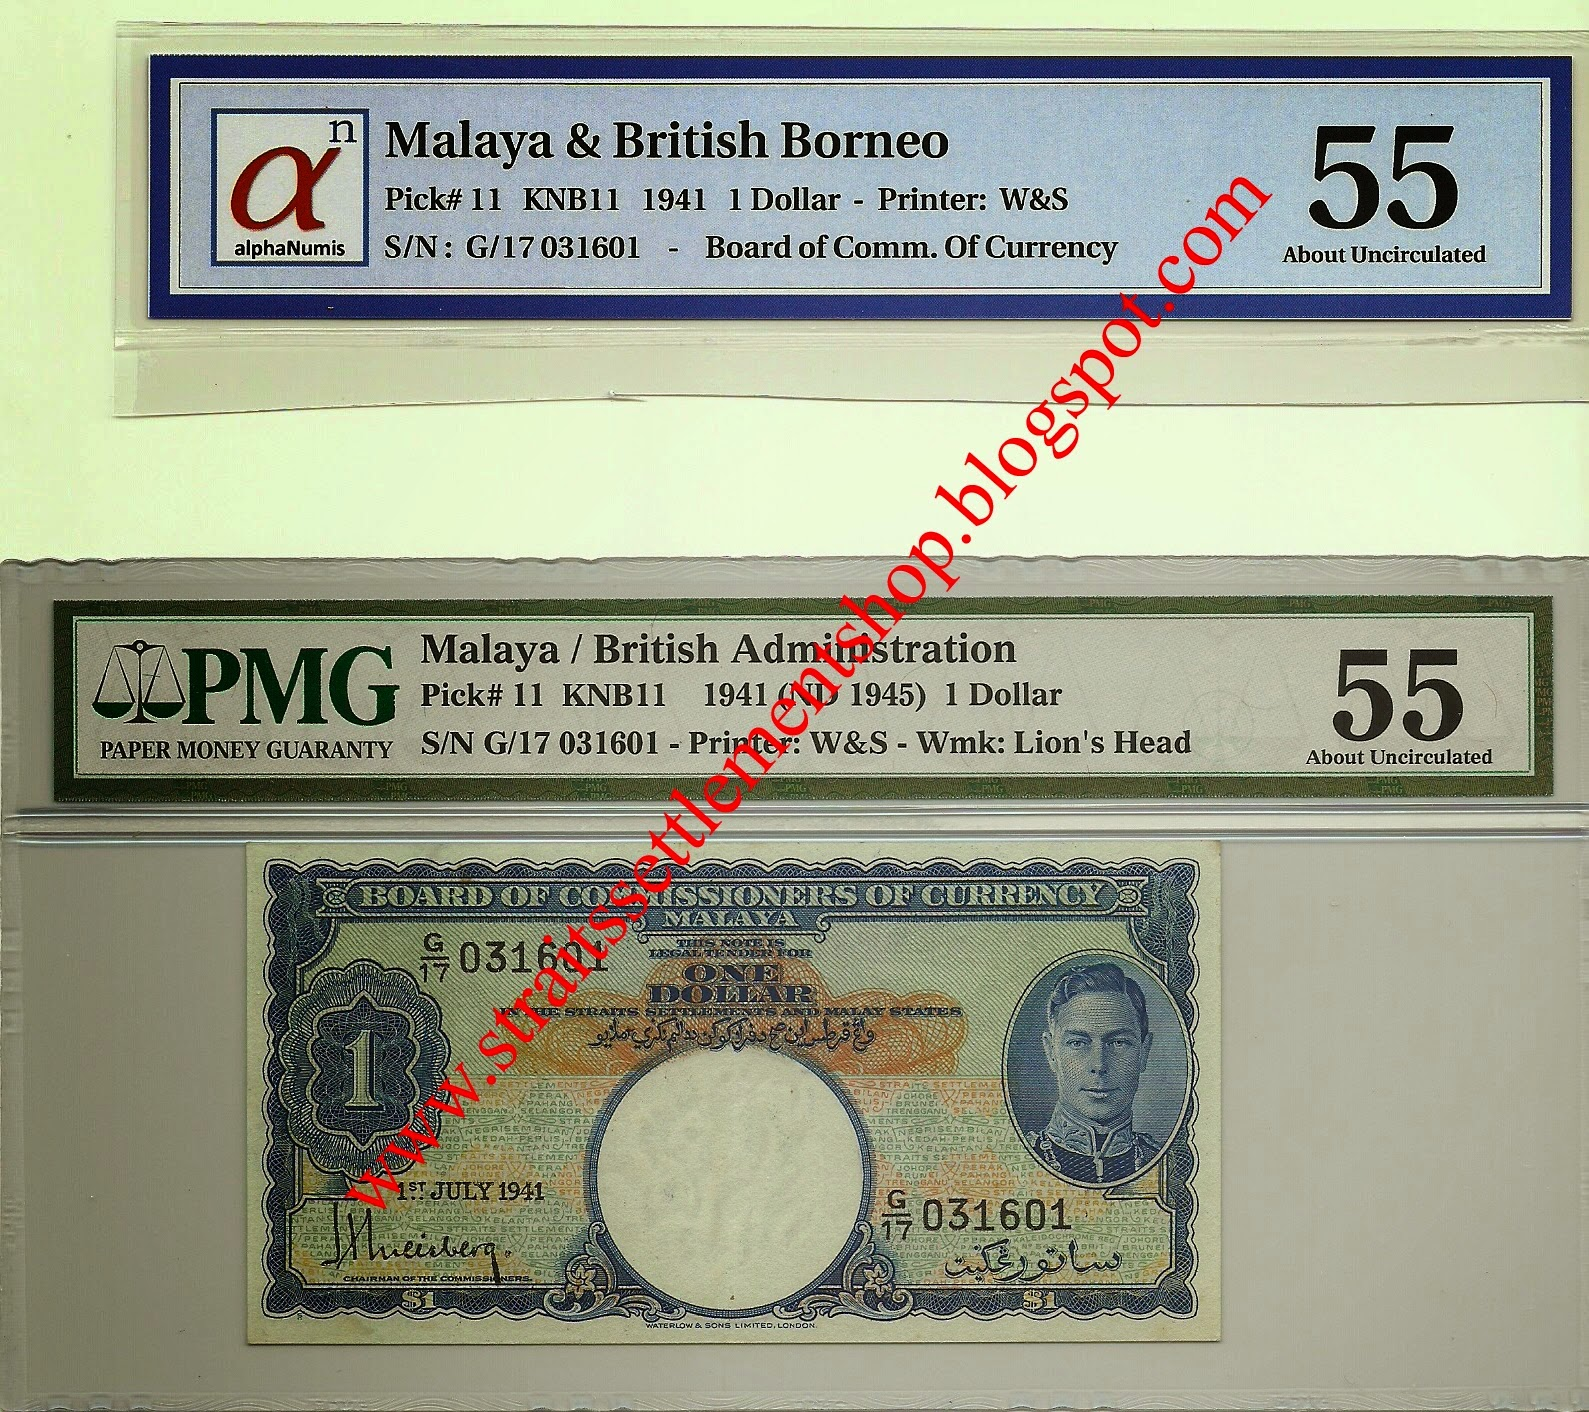 Malaya 1 Dollar 1941 Graded by alphaNumis & PMG